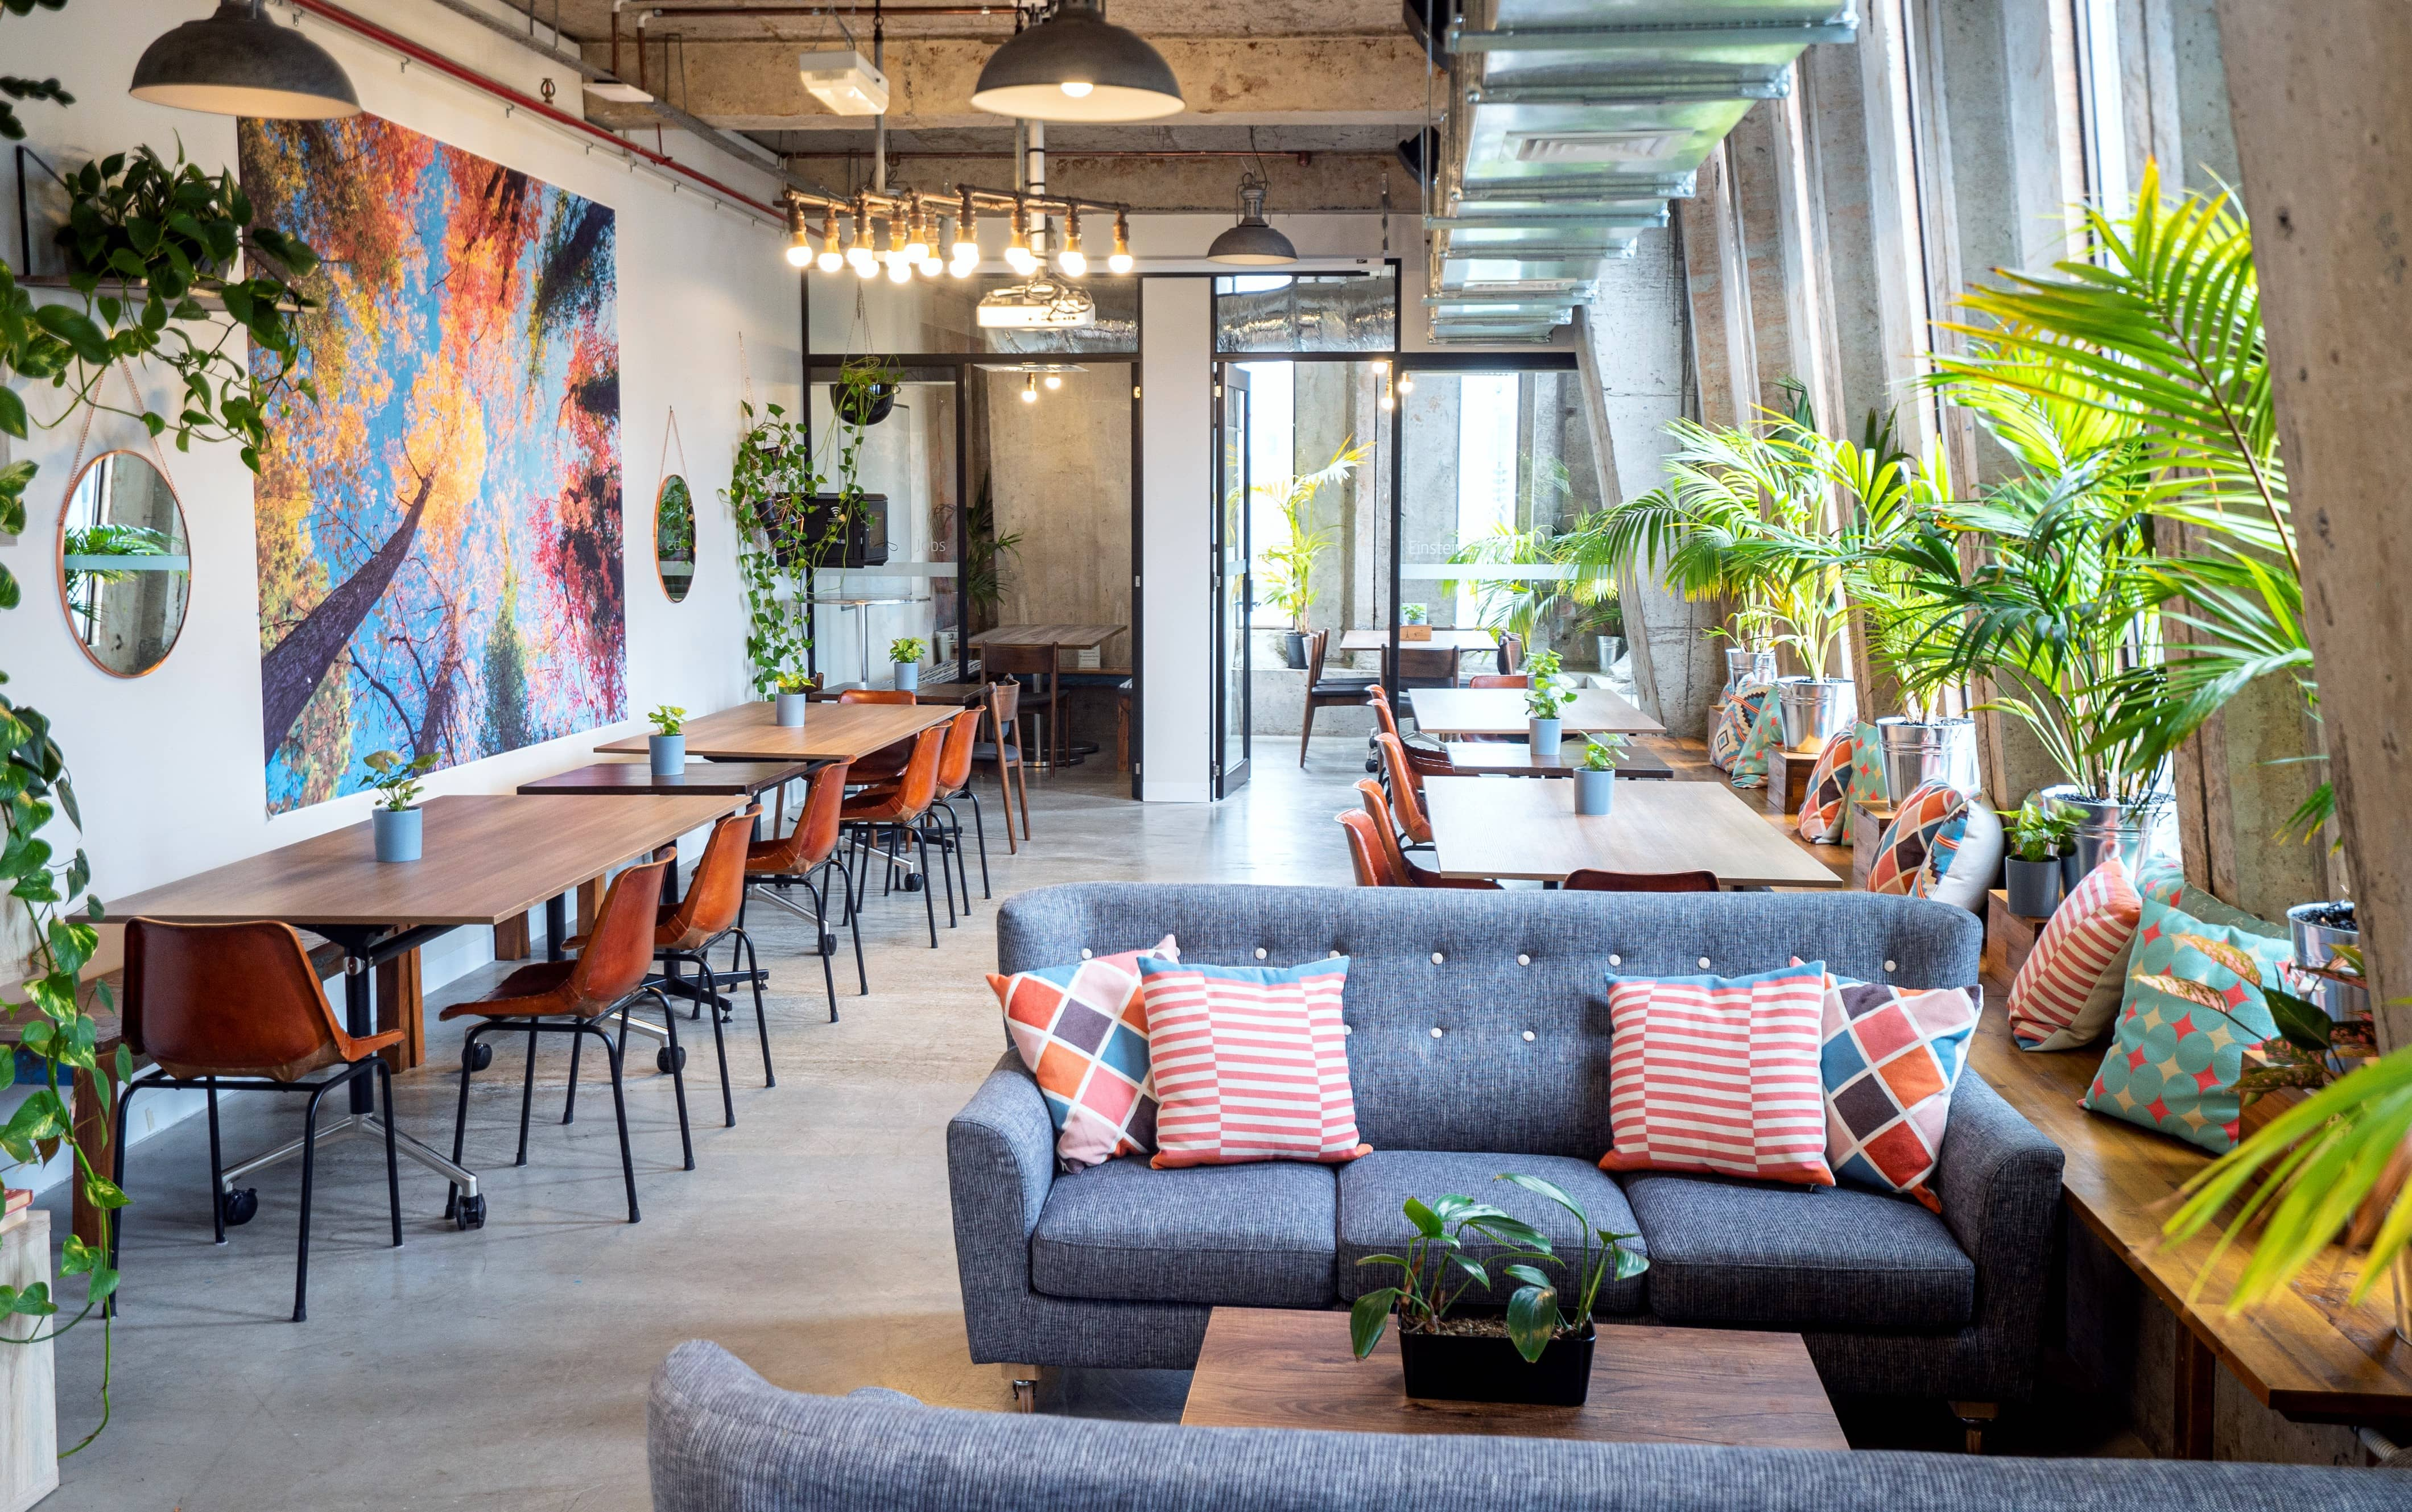 Stylish coworking communal space with sofas and cafe style seating